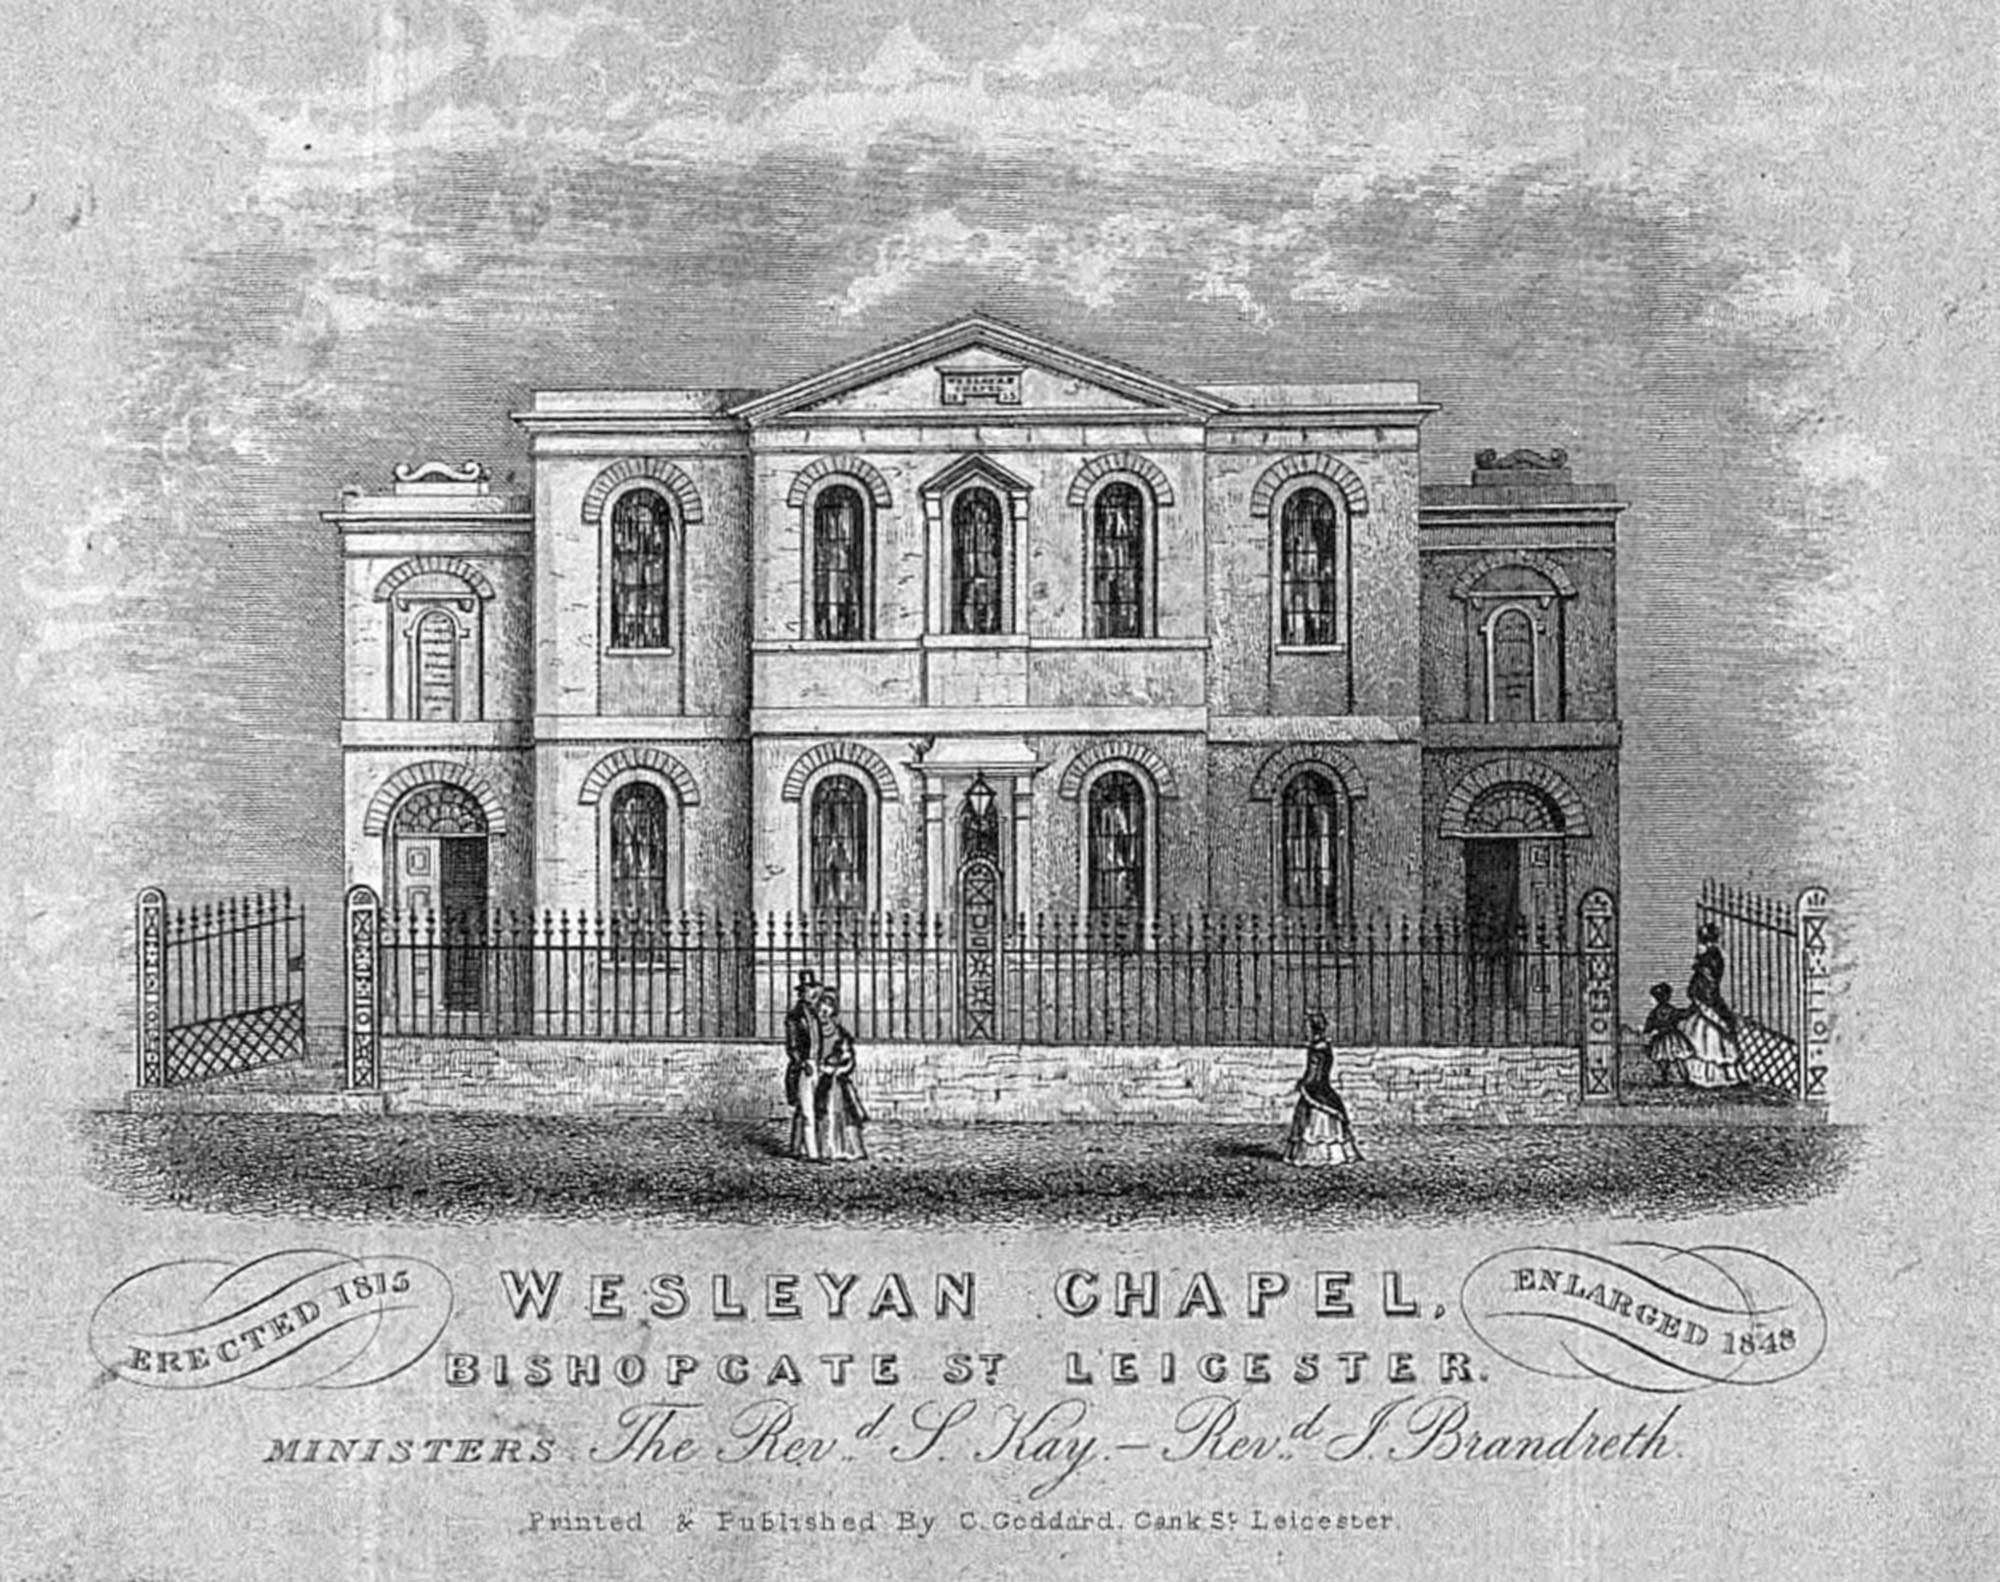 An engraving of the chapel printed by C. Goddard of Cank Street, Leicester, post 1848 - Leicestershire Record Office